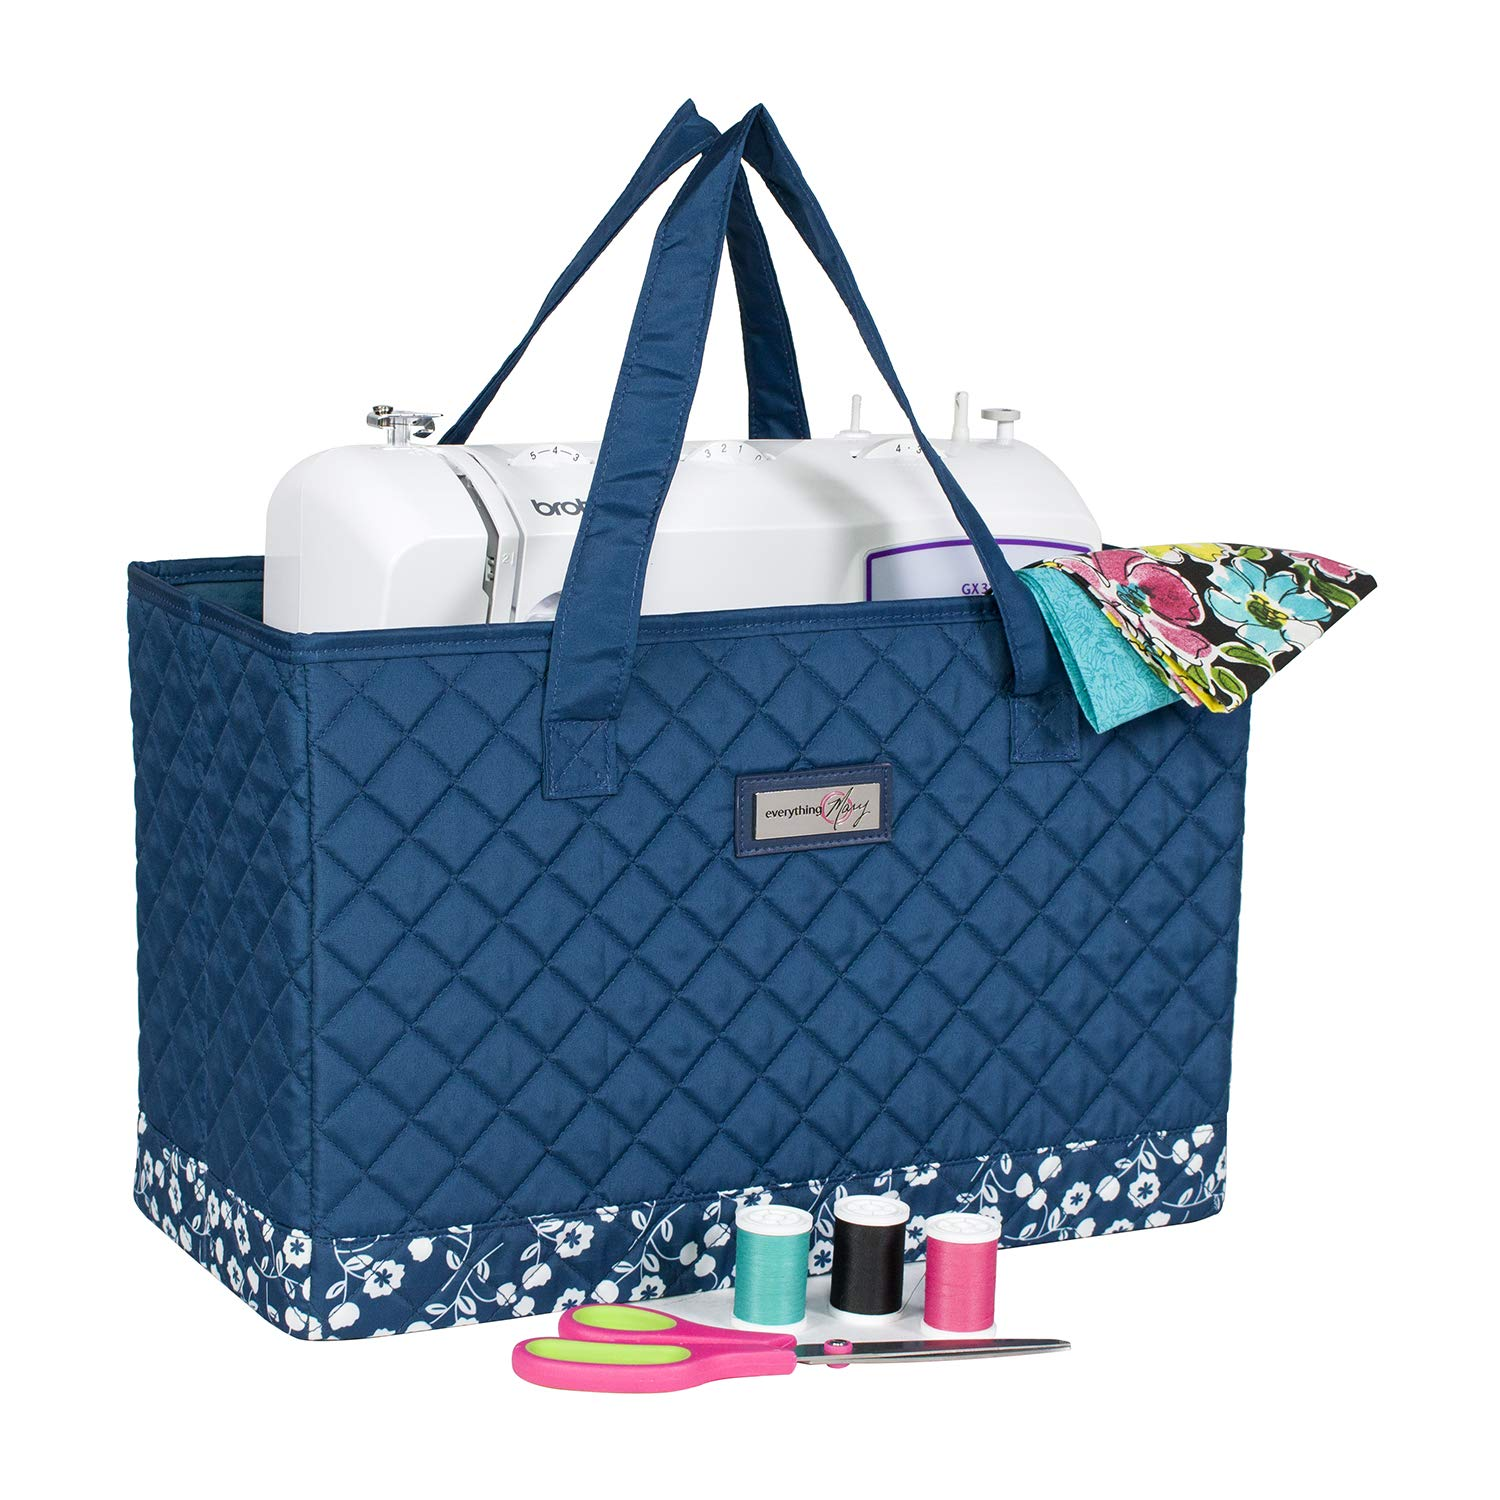 Everything Mary Deluxe Quilted Blue & Floral Sewing Machine Carrying Case - Sewing Machine Cover Case Tote Bag for Brother, Singer, Standard Size Machines - Sewing Bag with Handles for Travel by Everything Mary